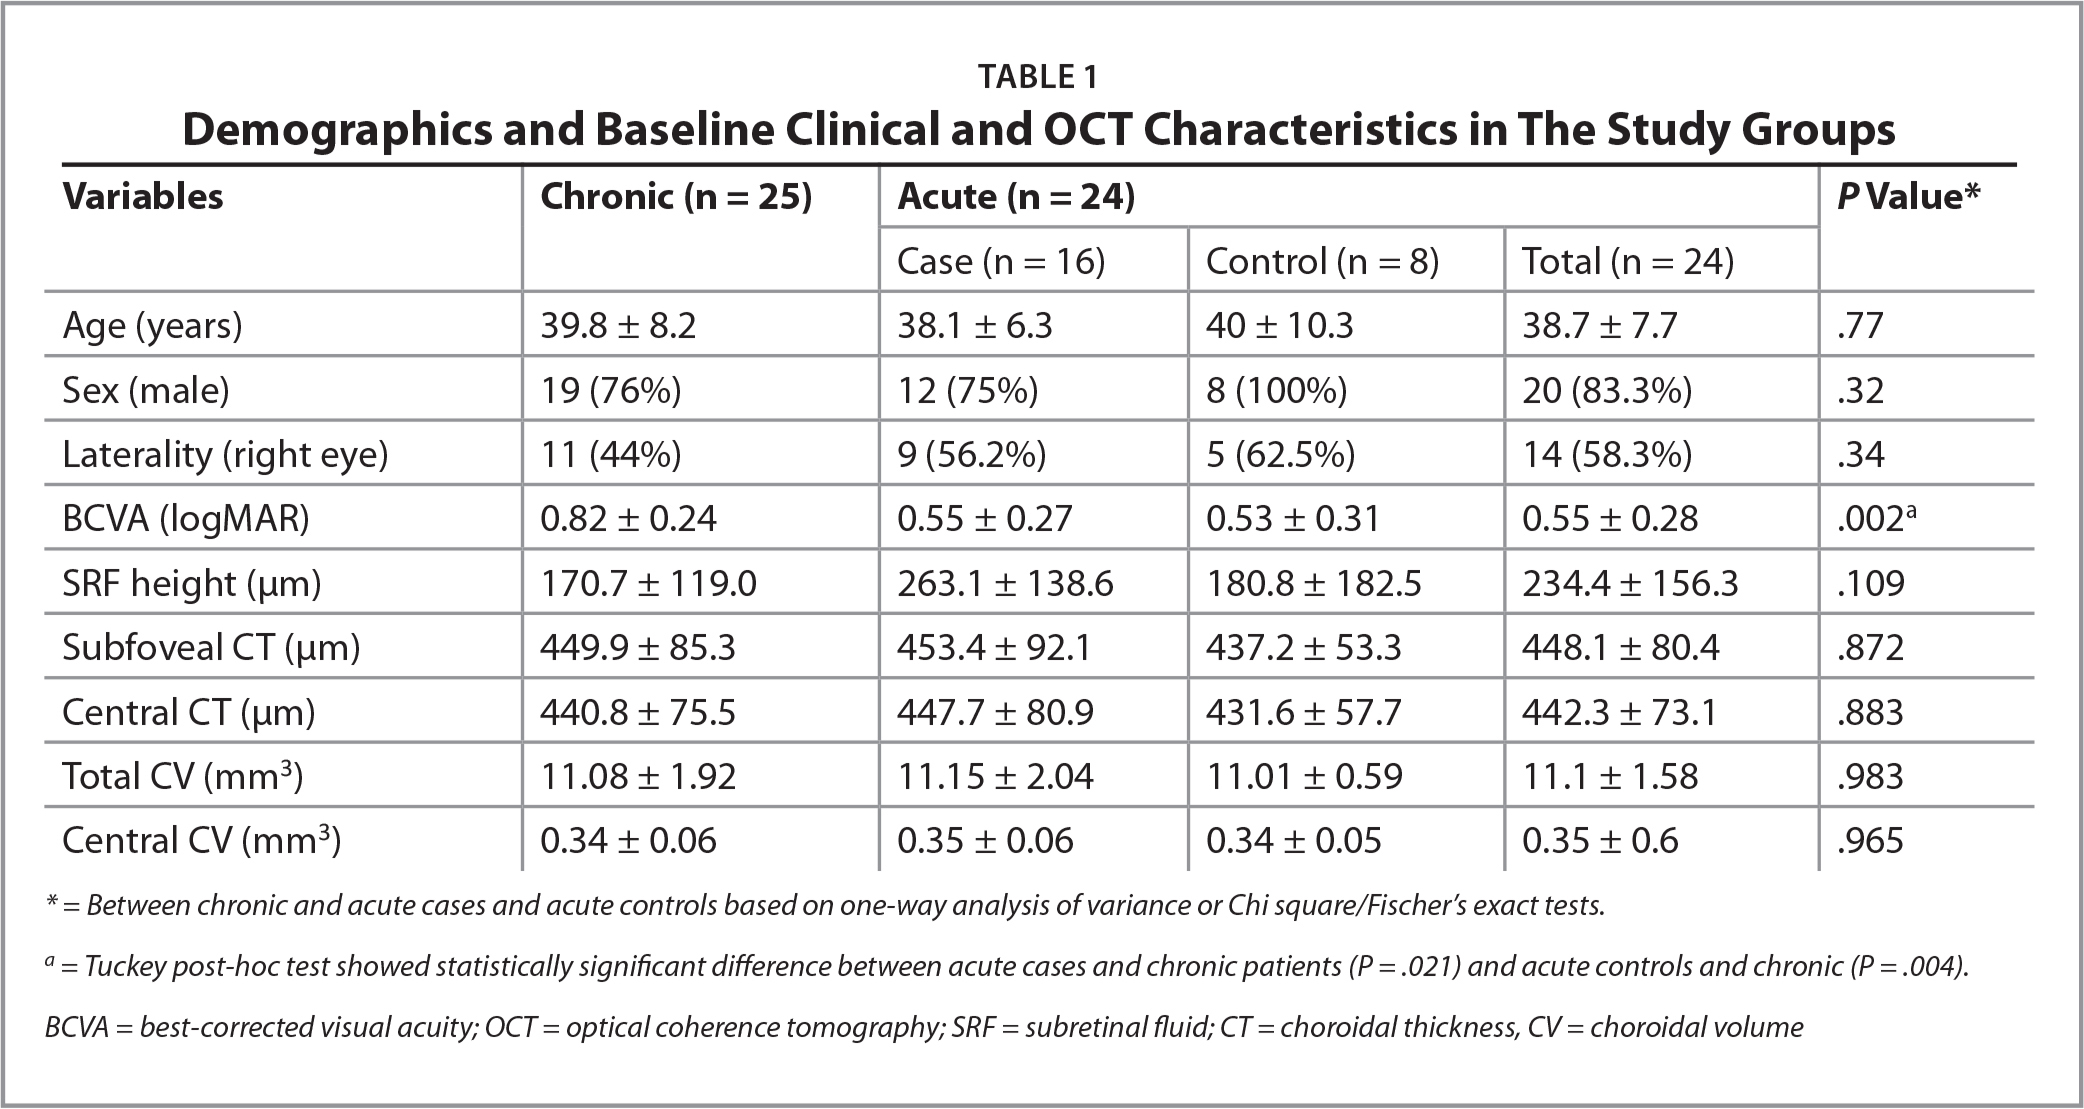 Demographics and Baseline Clinical and OCT Characteristics in The Study Groups